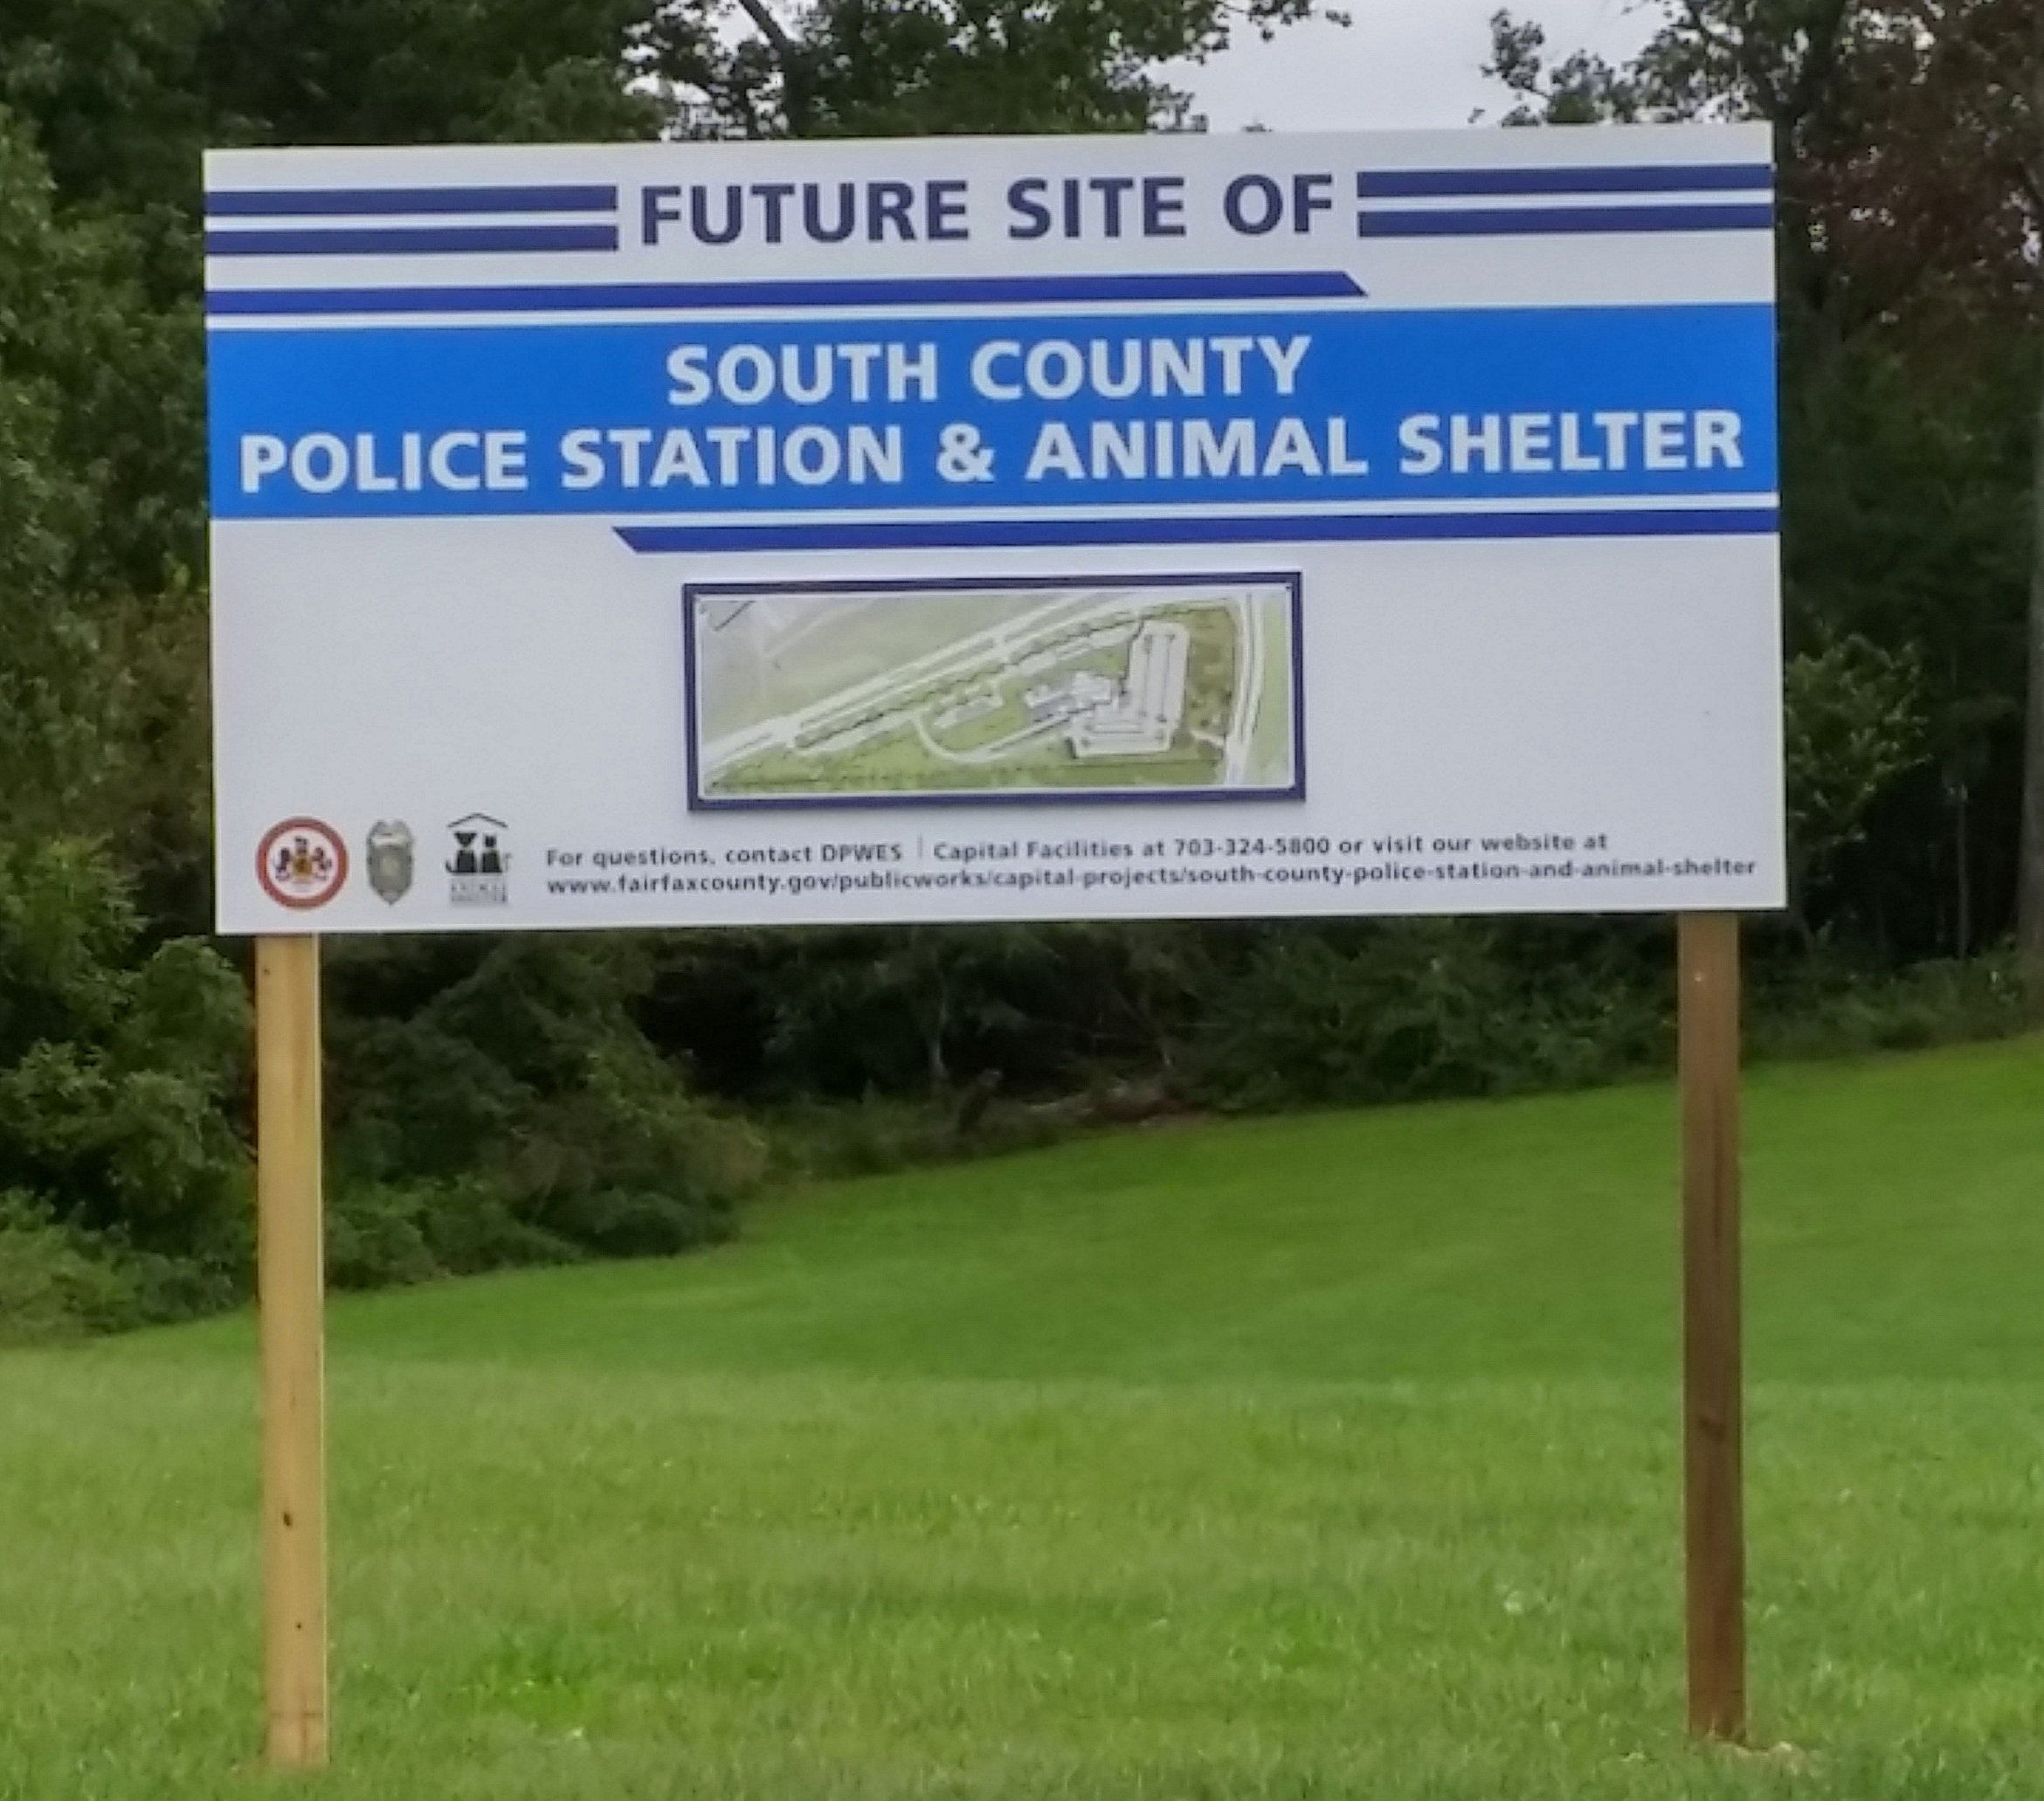 South County Police Station and Animal Shelter